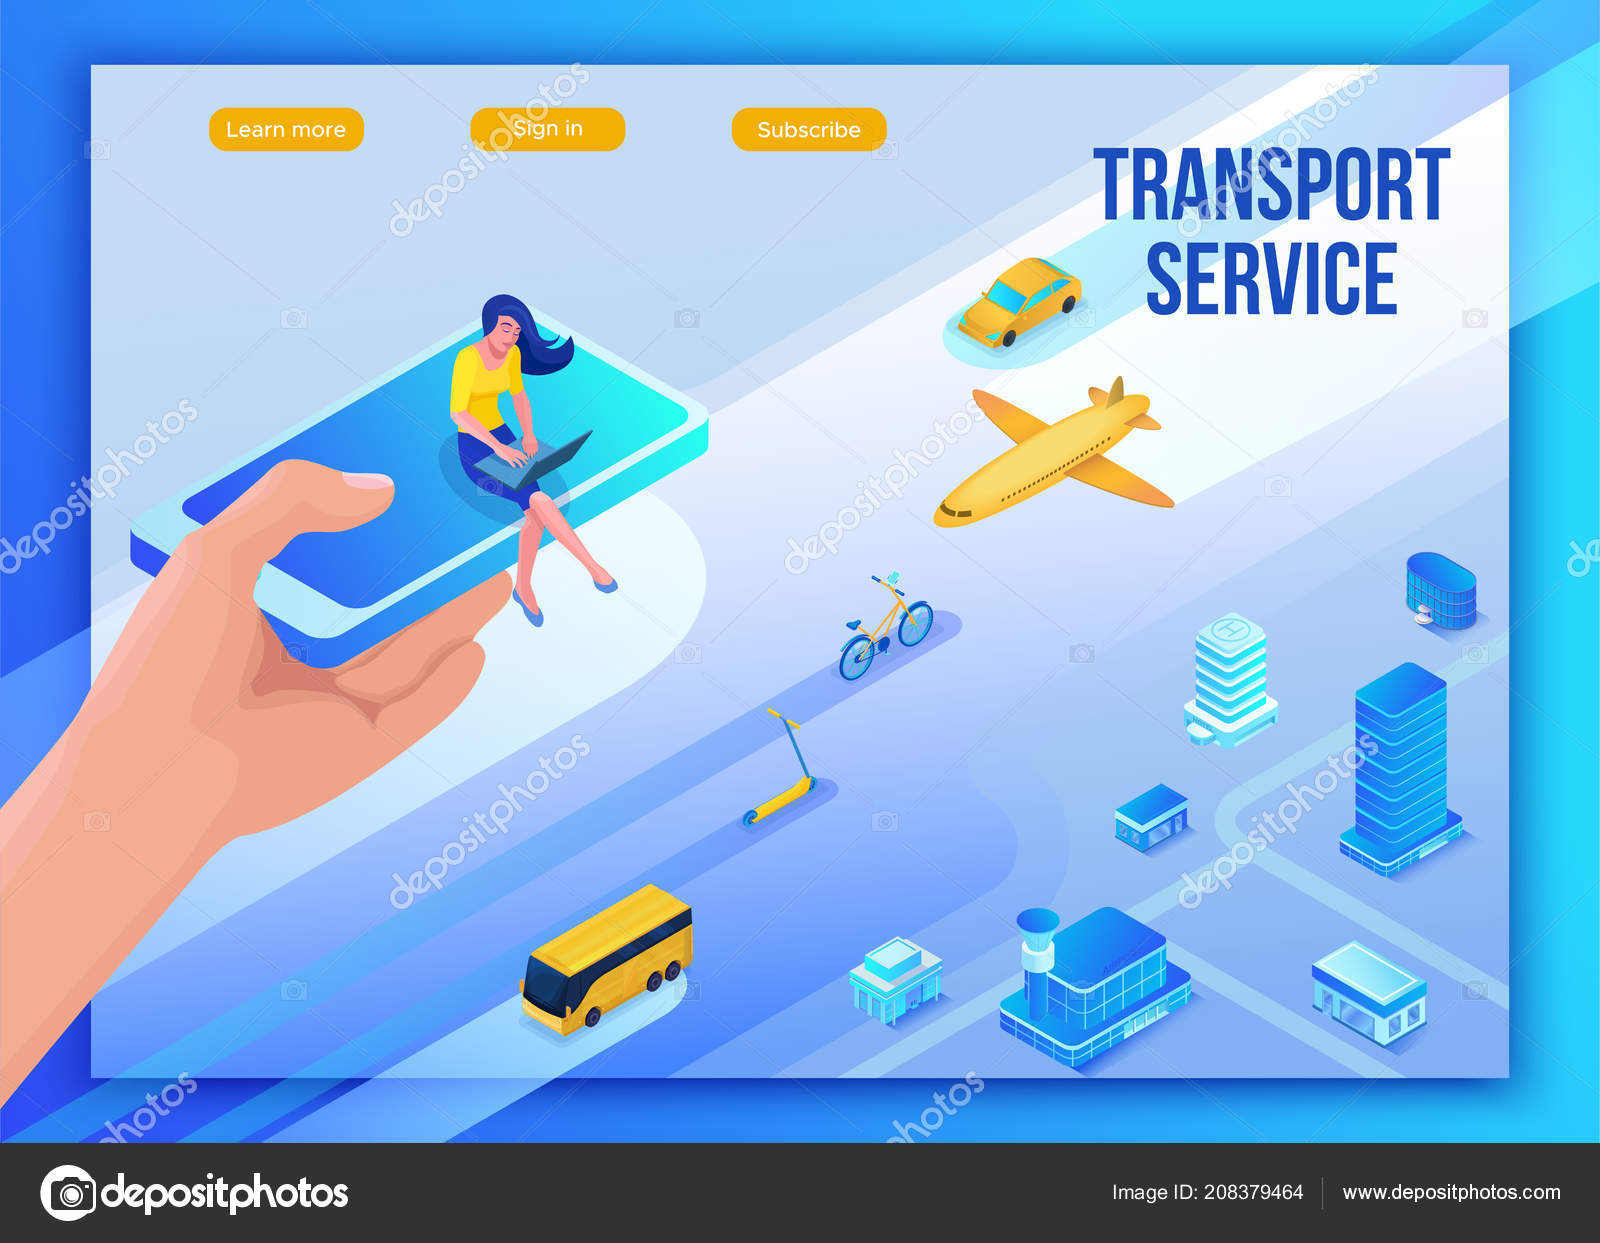 Mobile transportation online service landing page template, travel